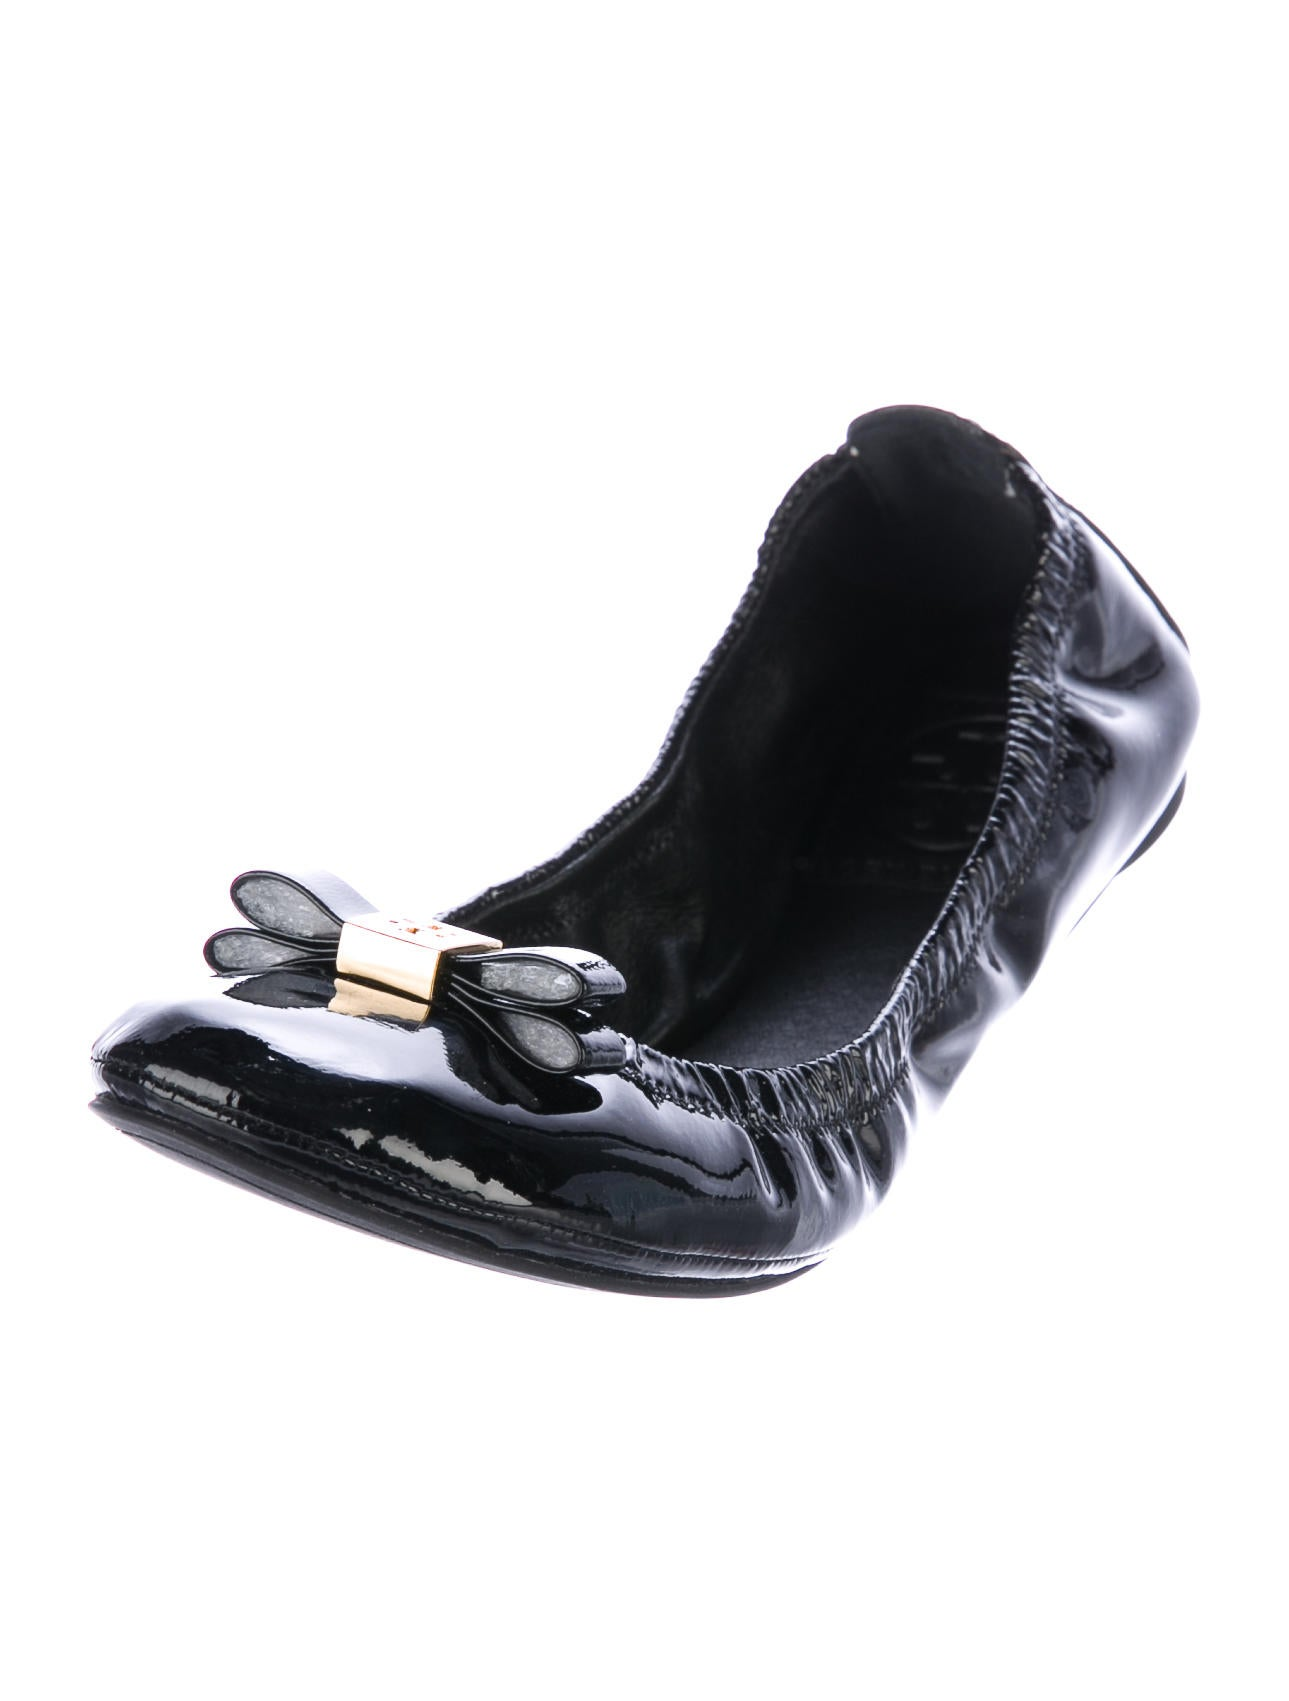 burch eddie patent leather flats shoes wto106652